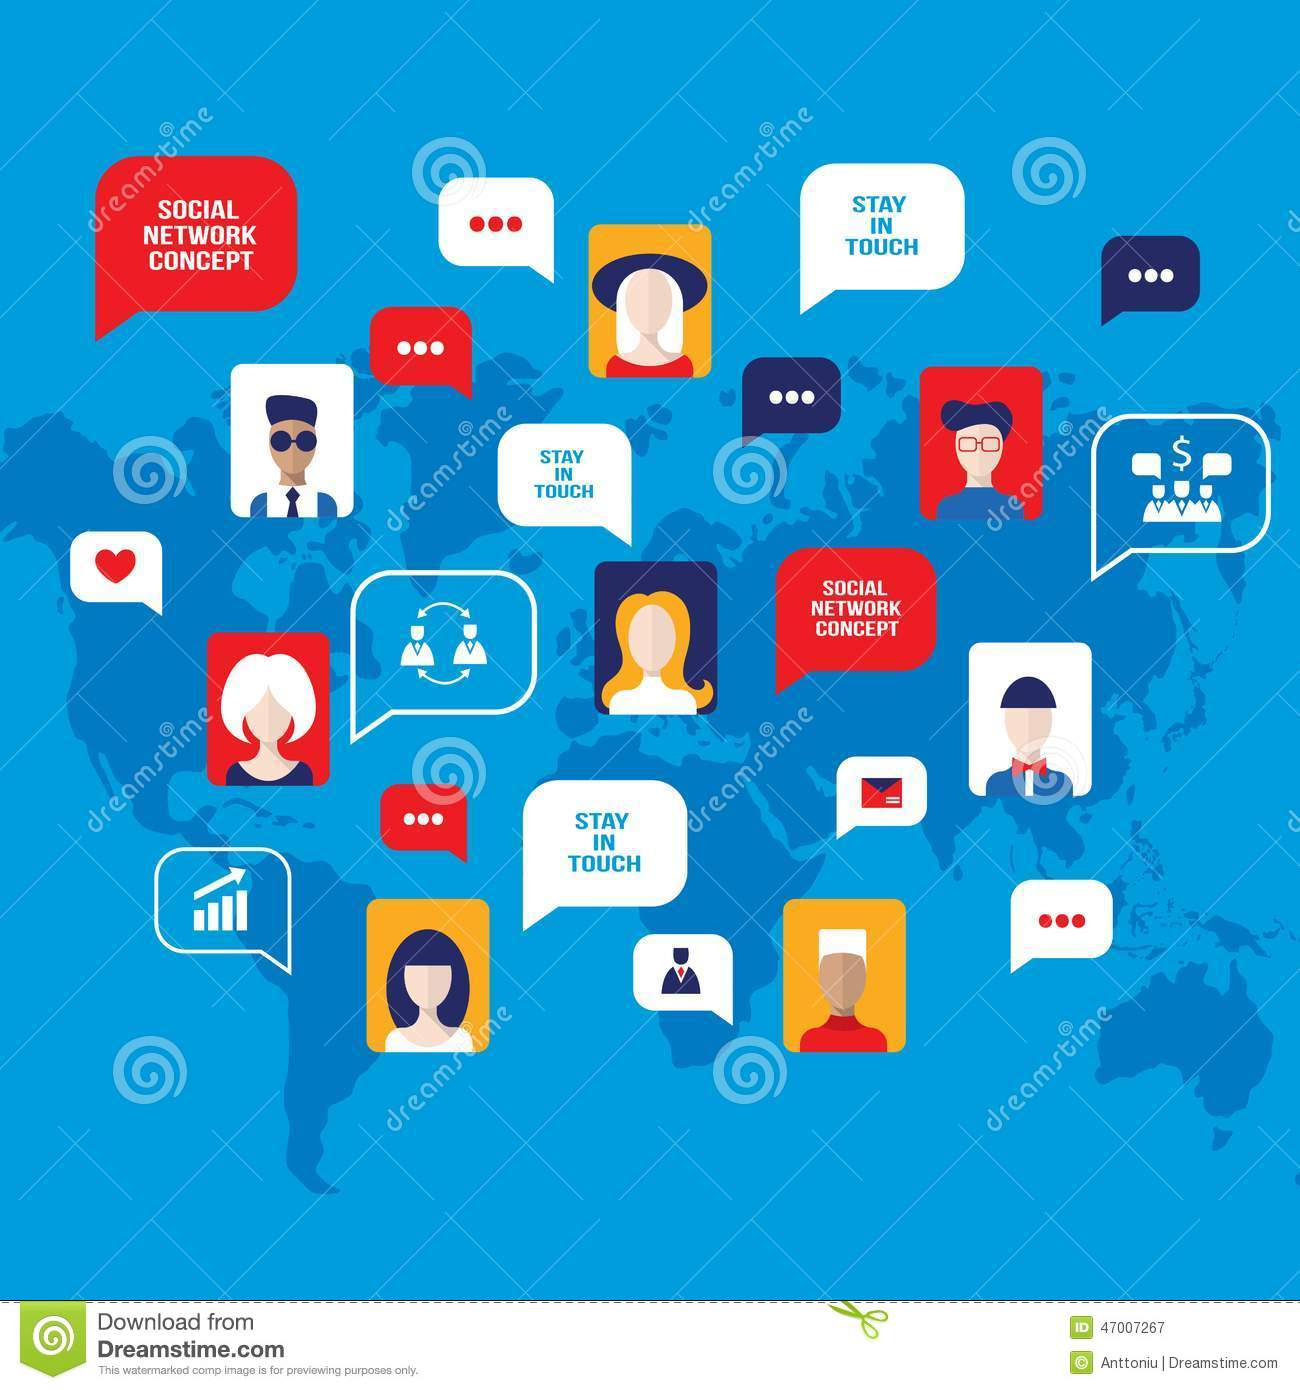 Social networking in the business world